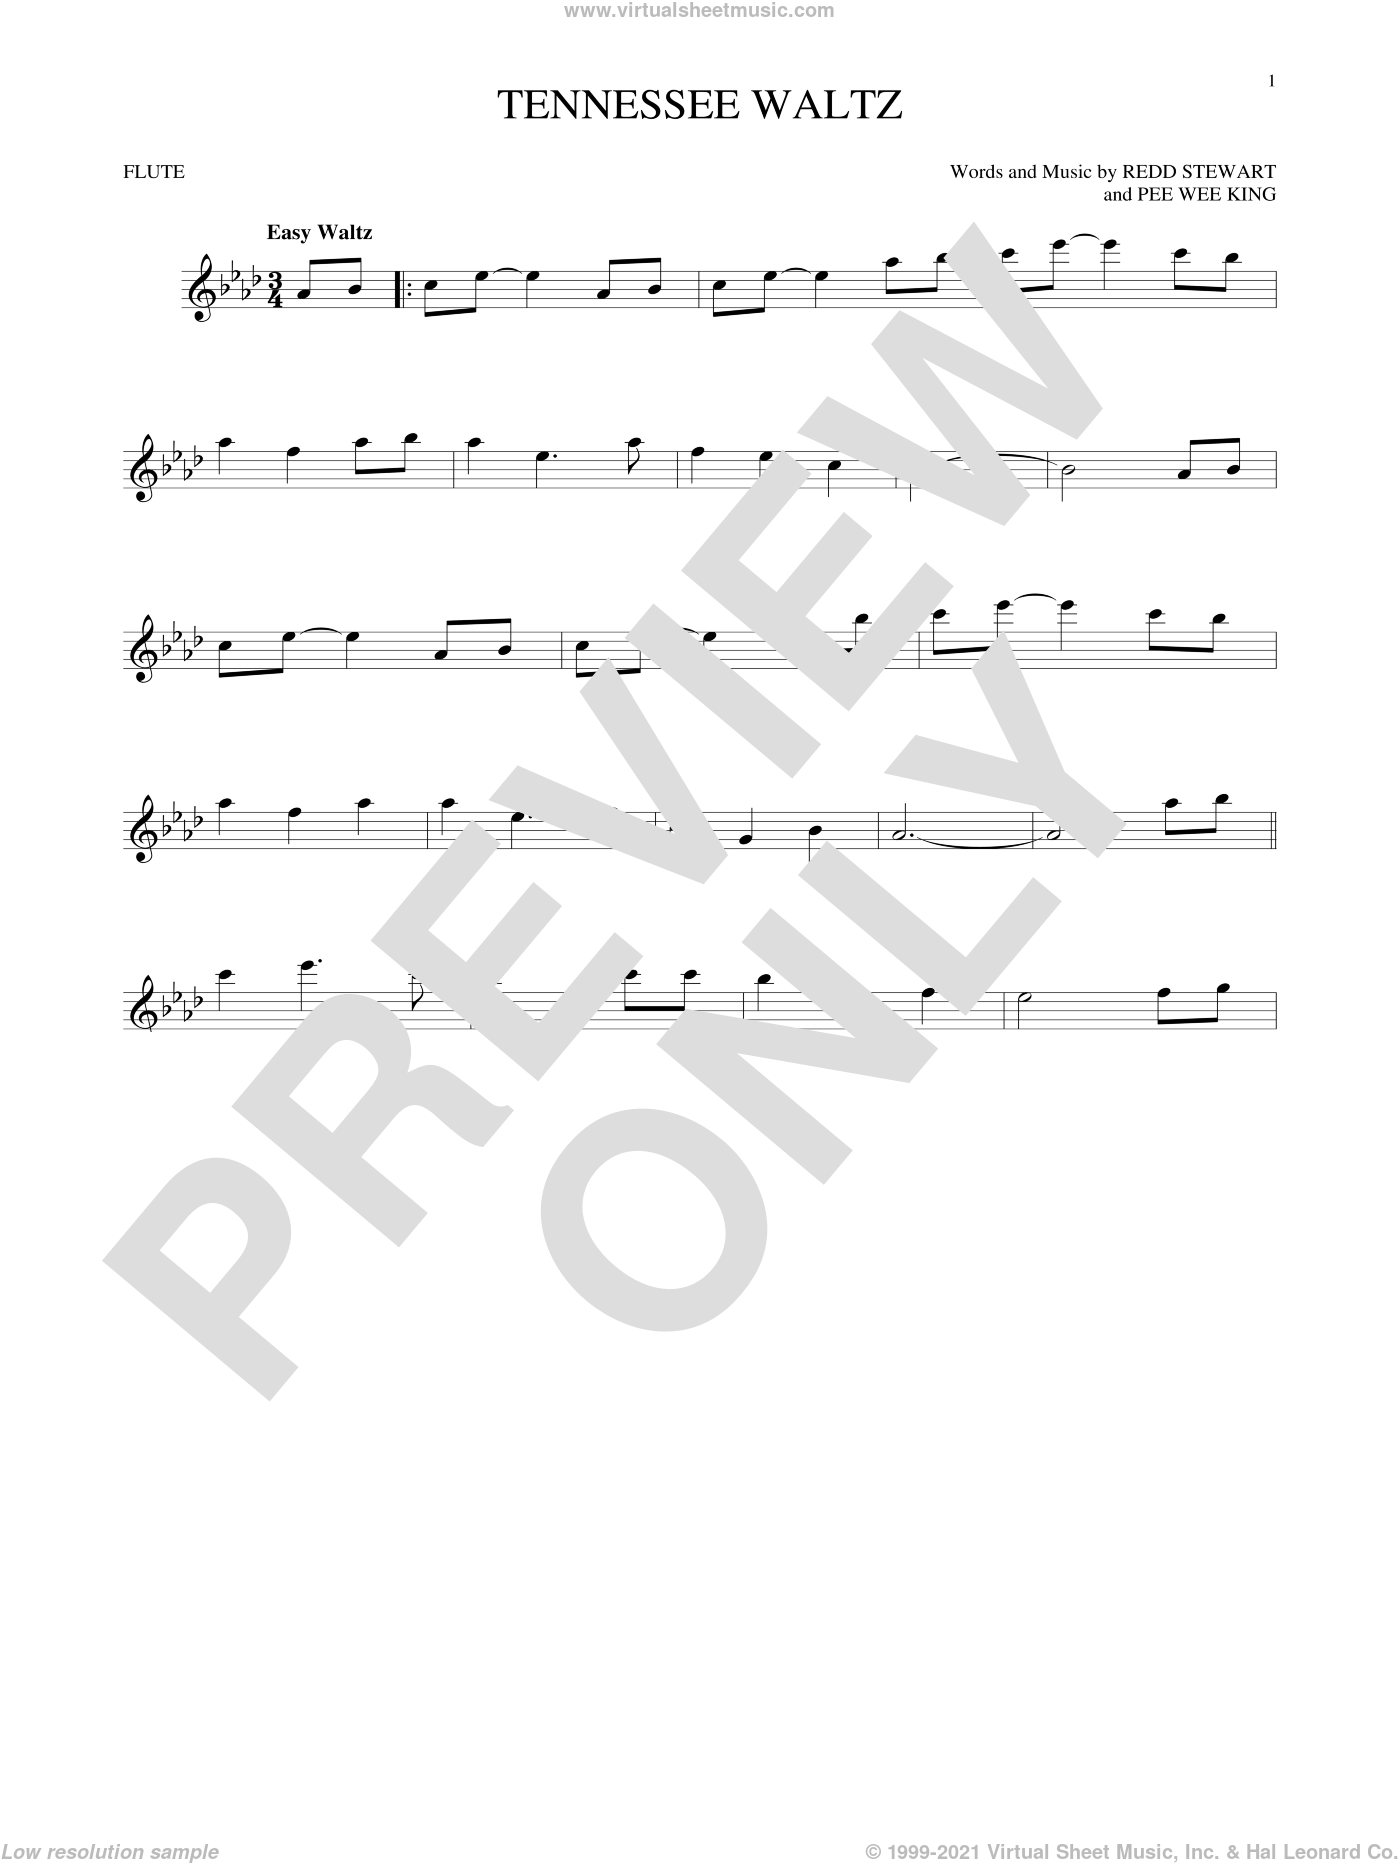 Tennessee Waltz sheet music for flute solo by Redd Stewart and Patti Page. Score Image Preview.